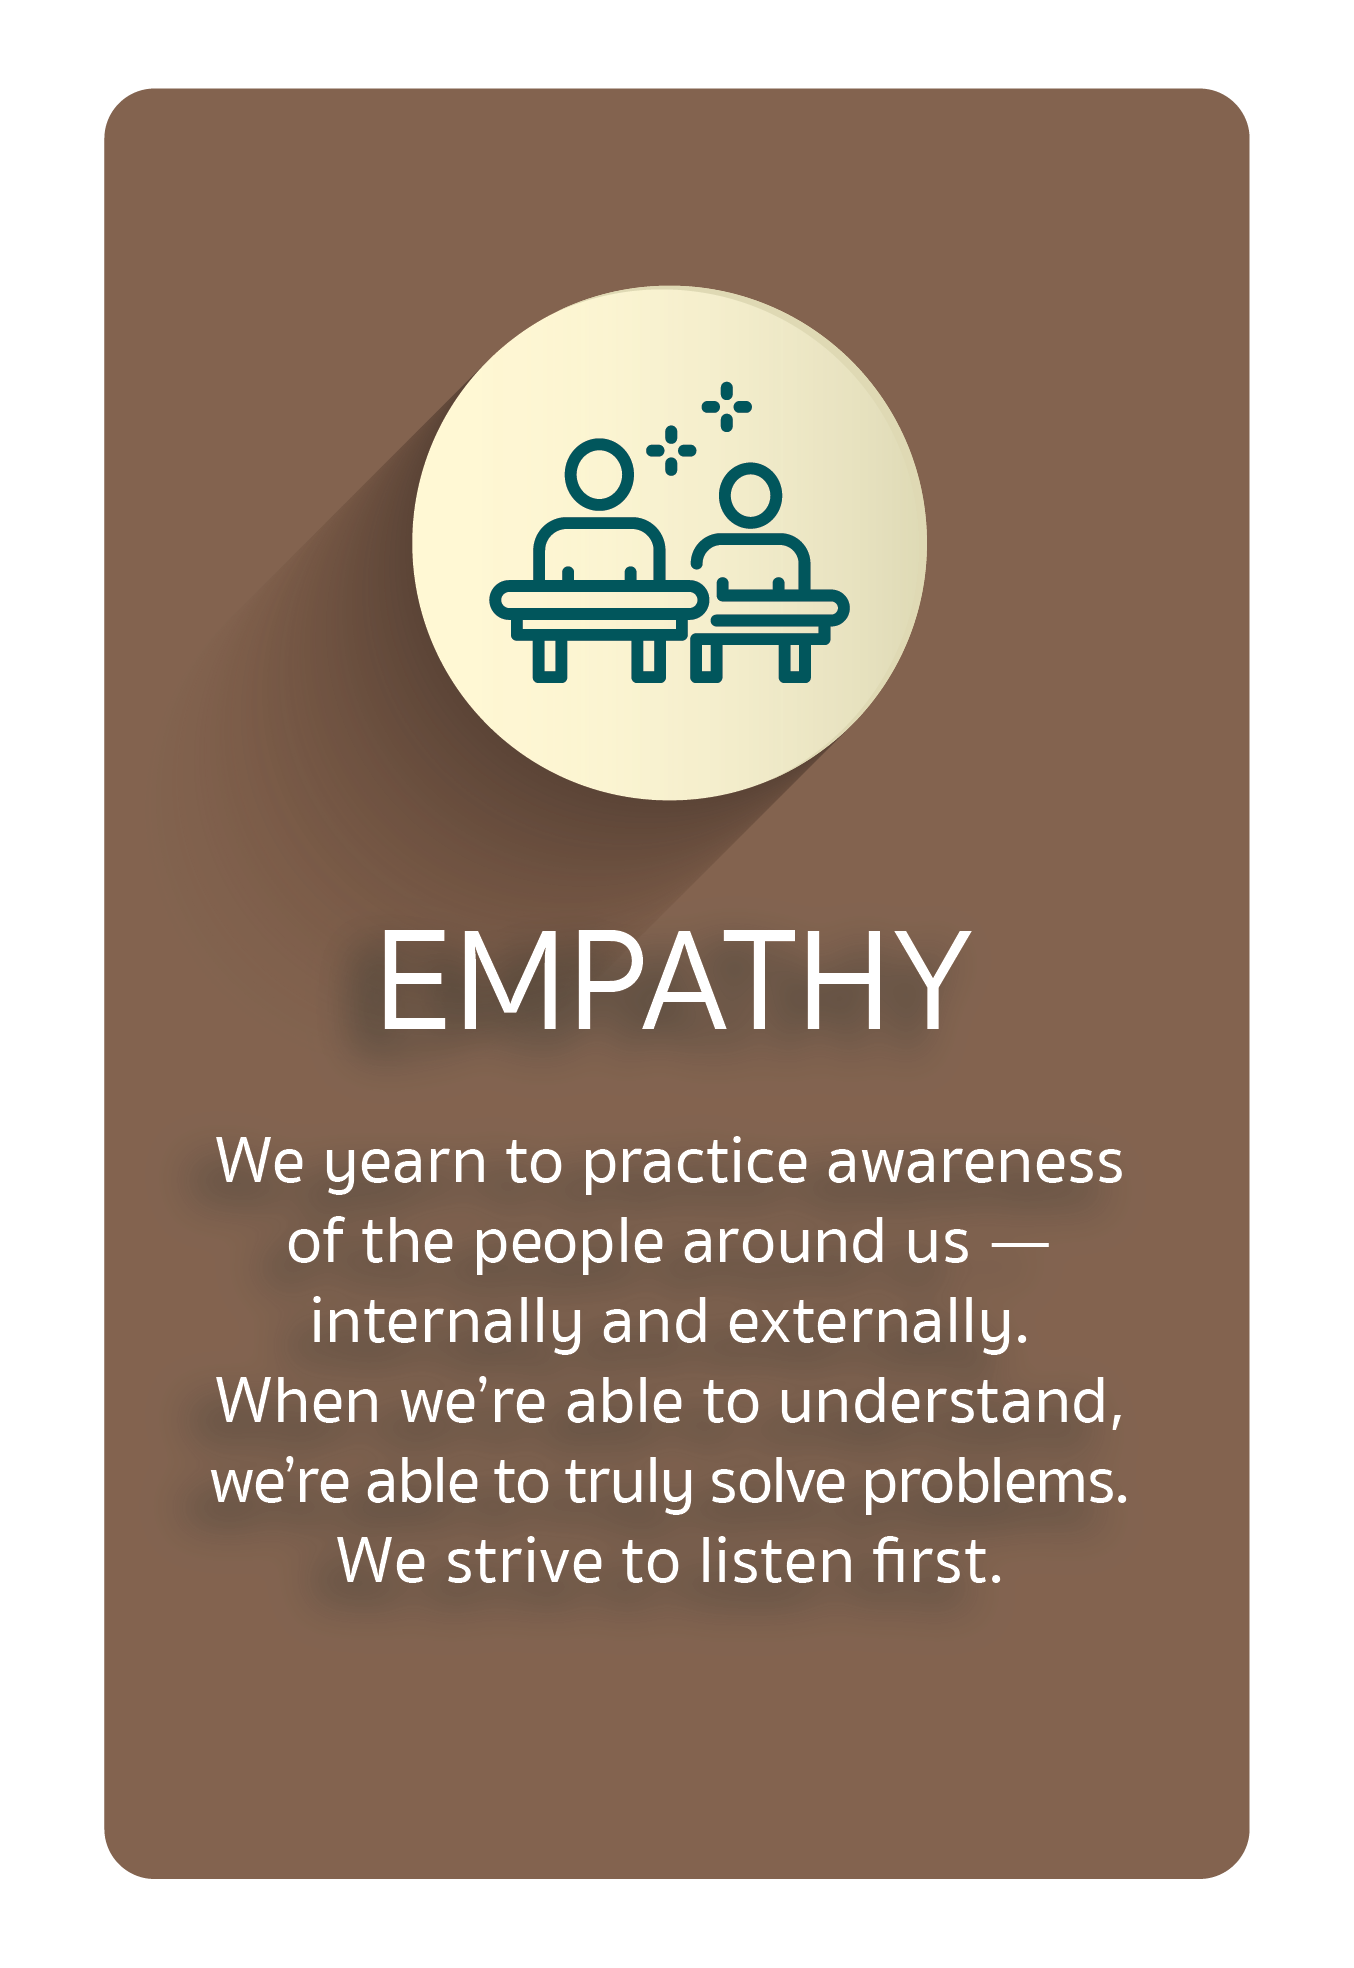 Core Value Empathy